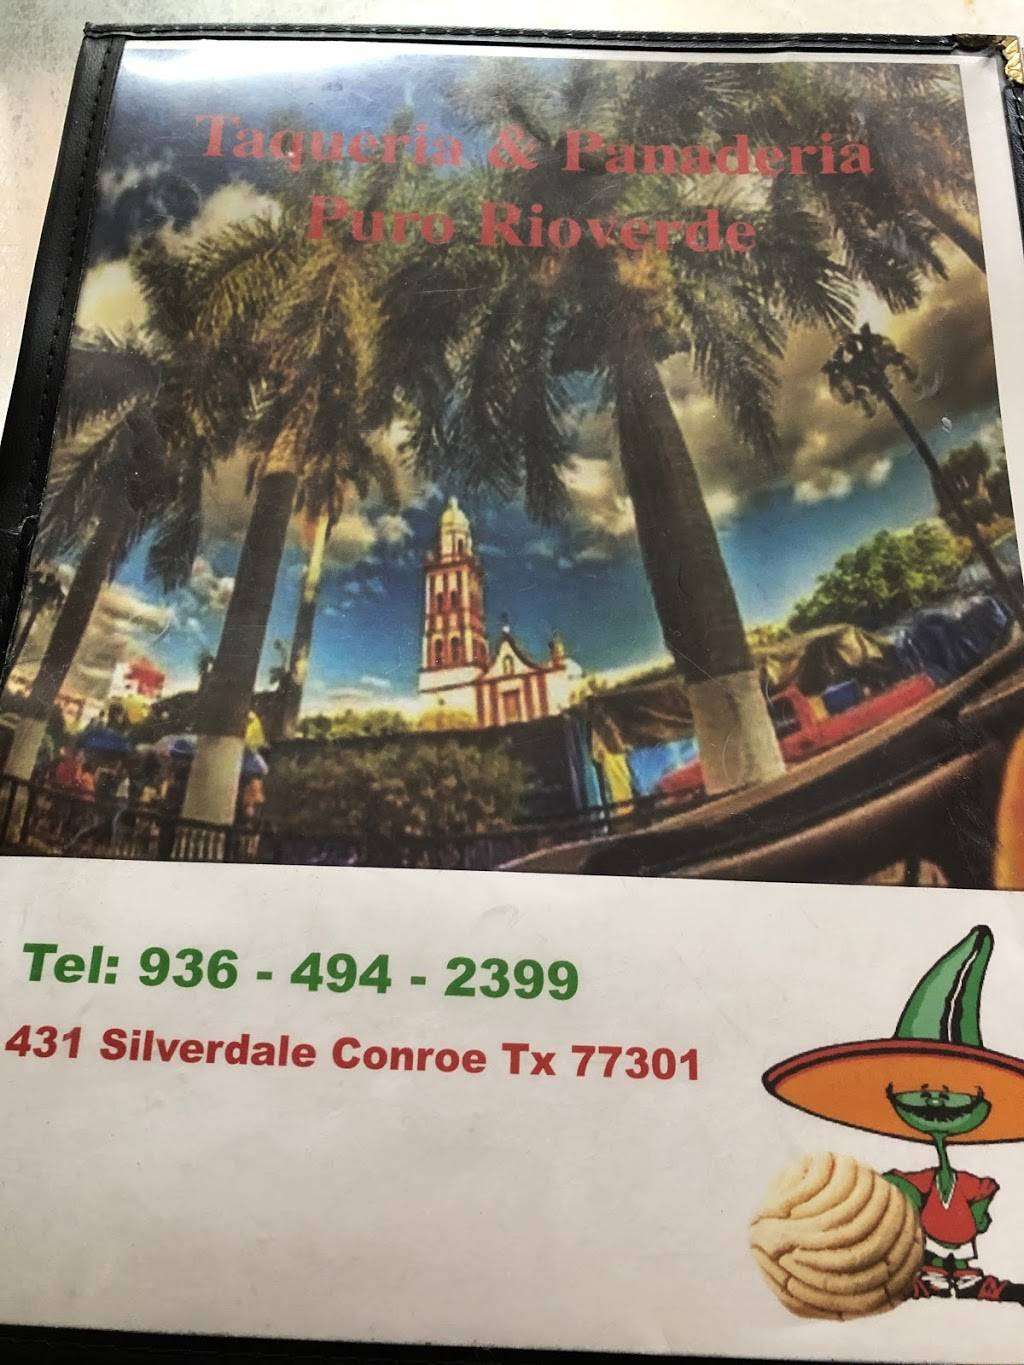 Taqueria Y Bakery RioVerde | restaurant | 431 Silverdale Dr, Conroe, TX 77301, USA | 9364942399 OR +1 936-494-2399